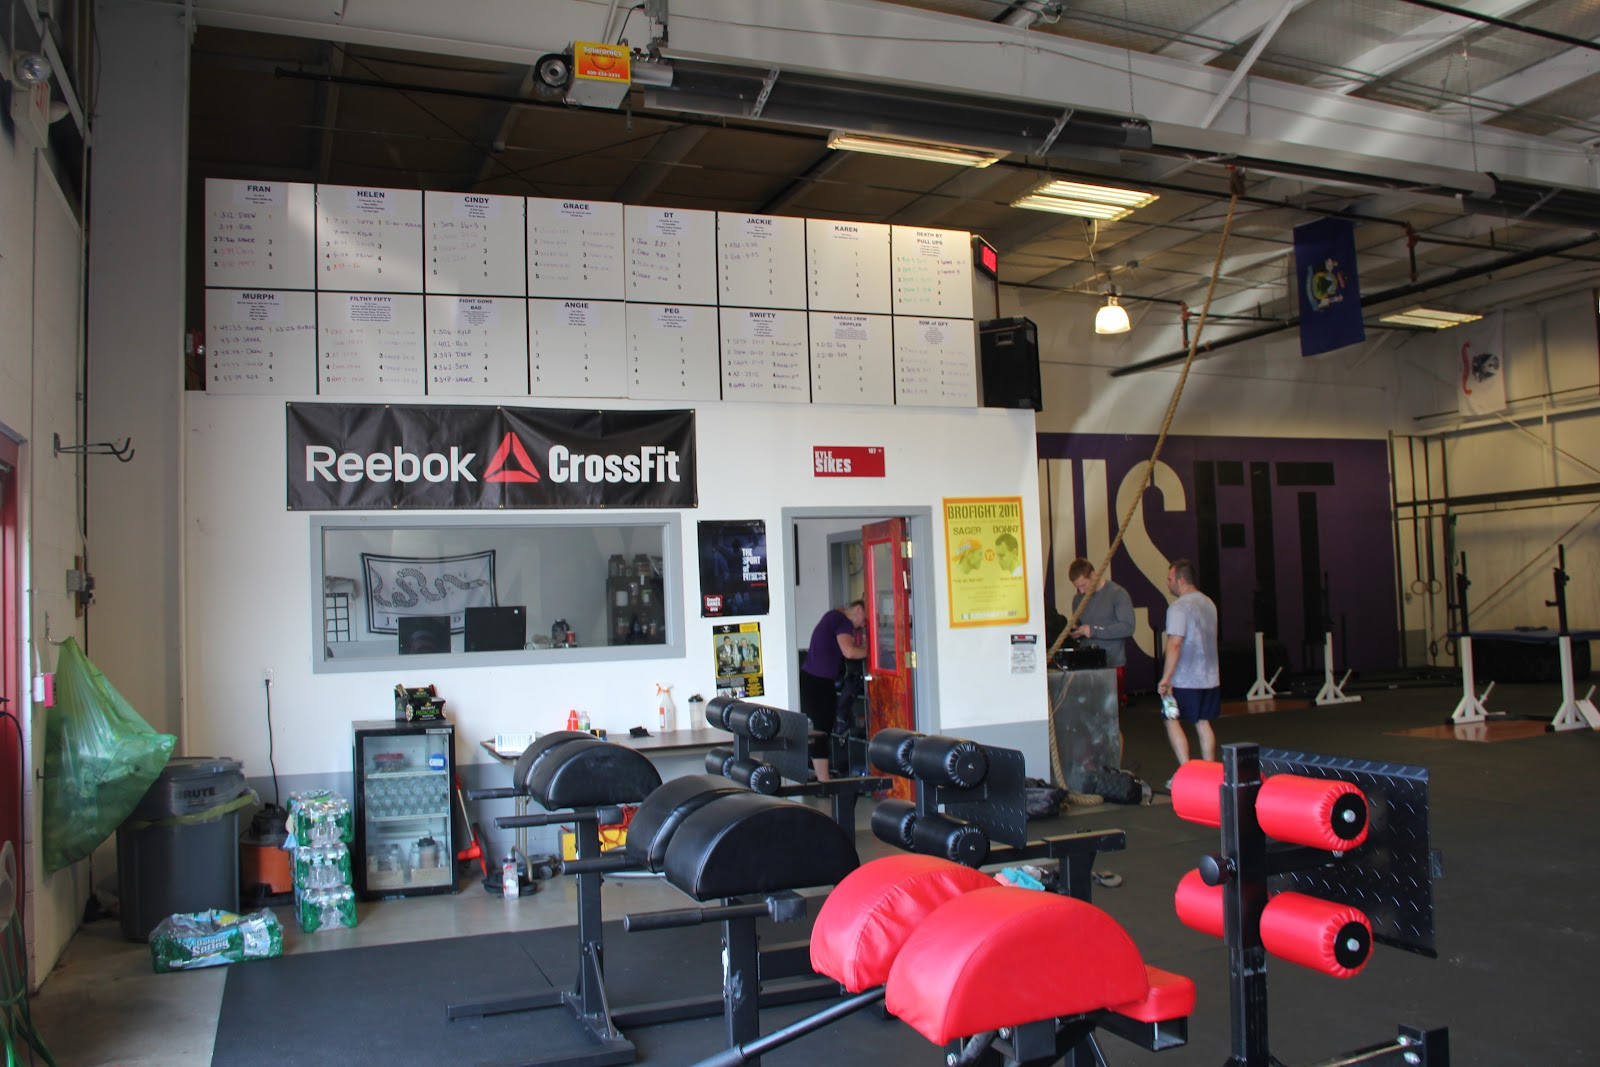 Daily Delight Upscale Gym also Stock Images Group People Lifting Weights Image16303224 in addition Floor Plans besides Modern Iron Gates further 351562314634493375. on home gym design ideas